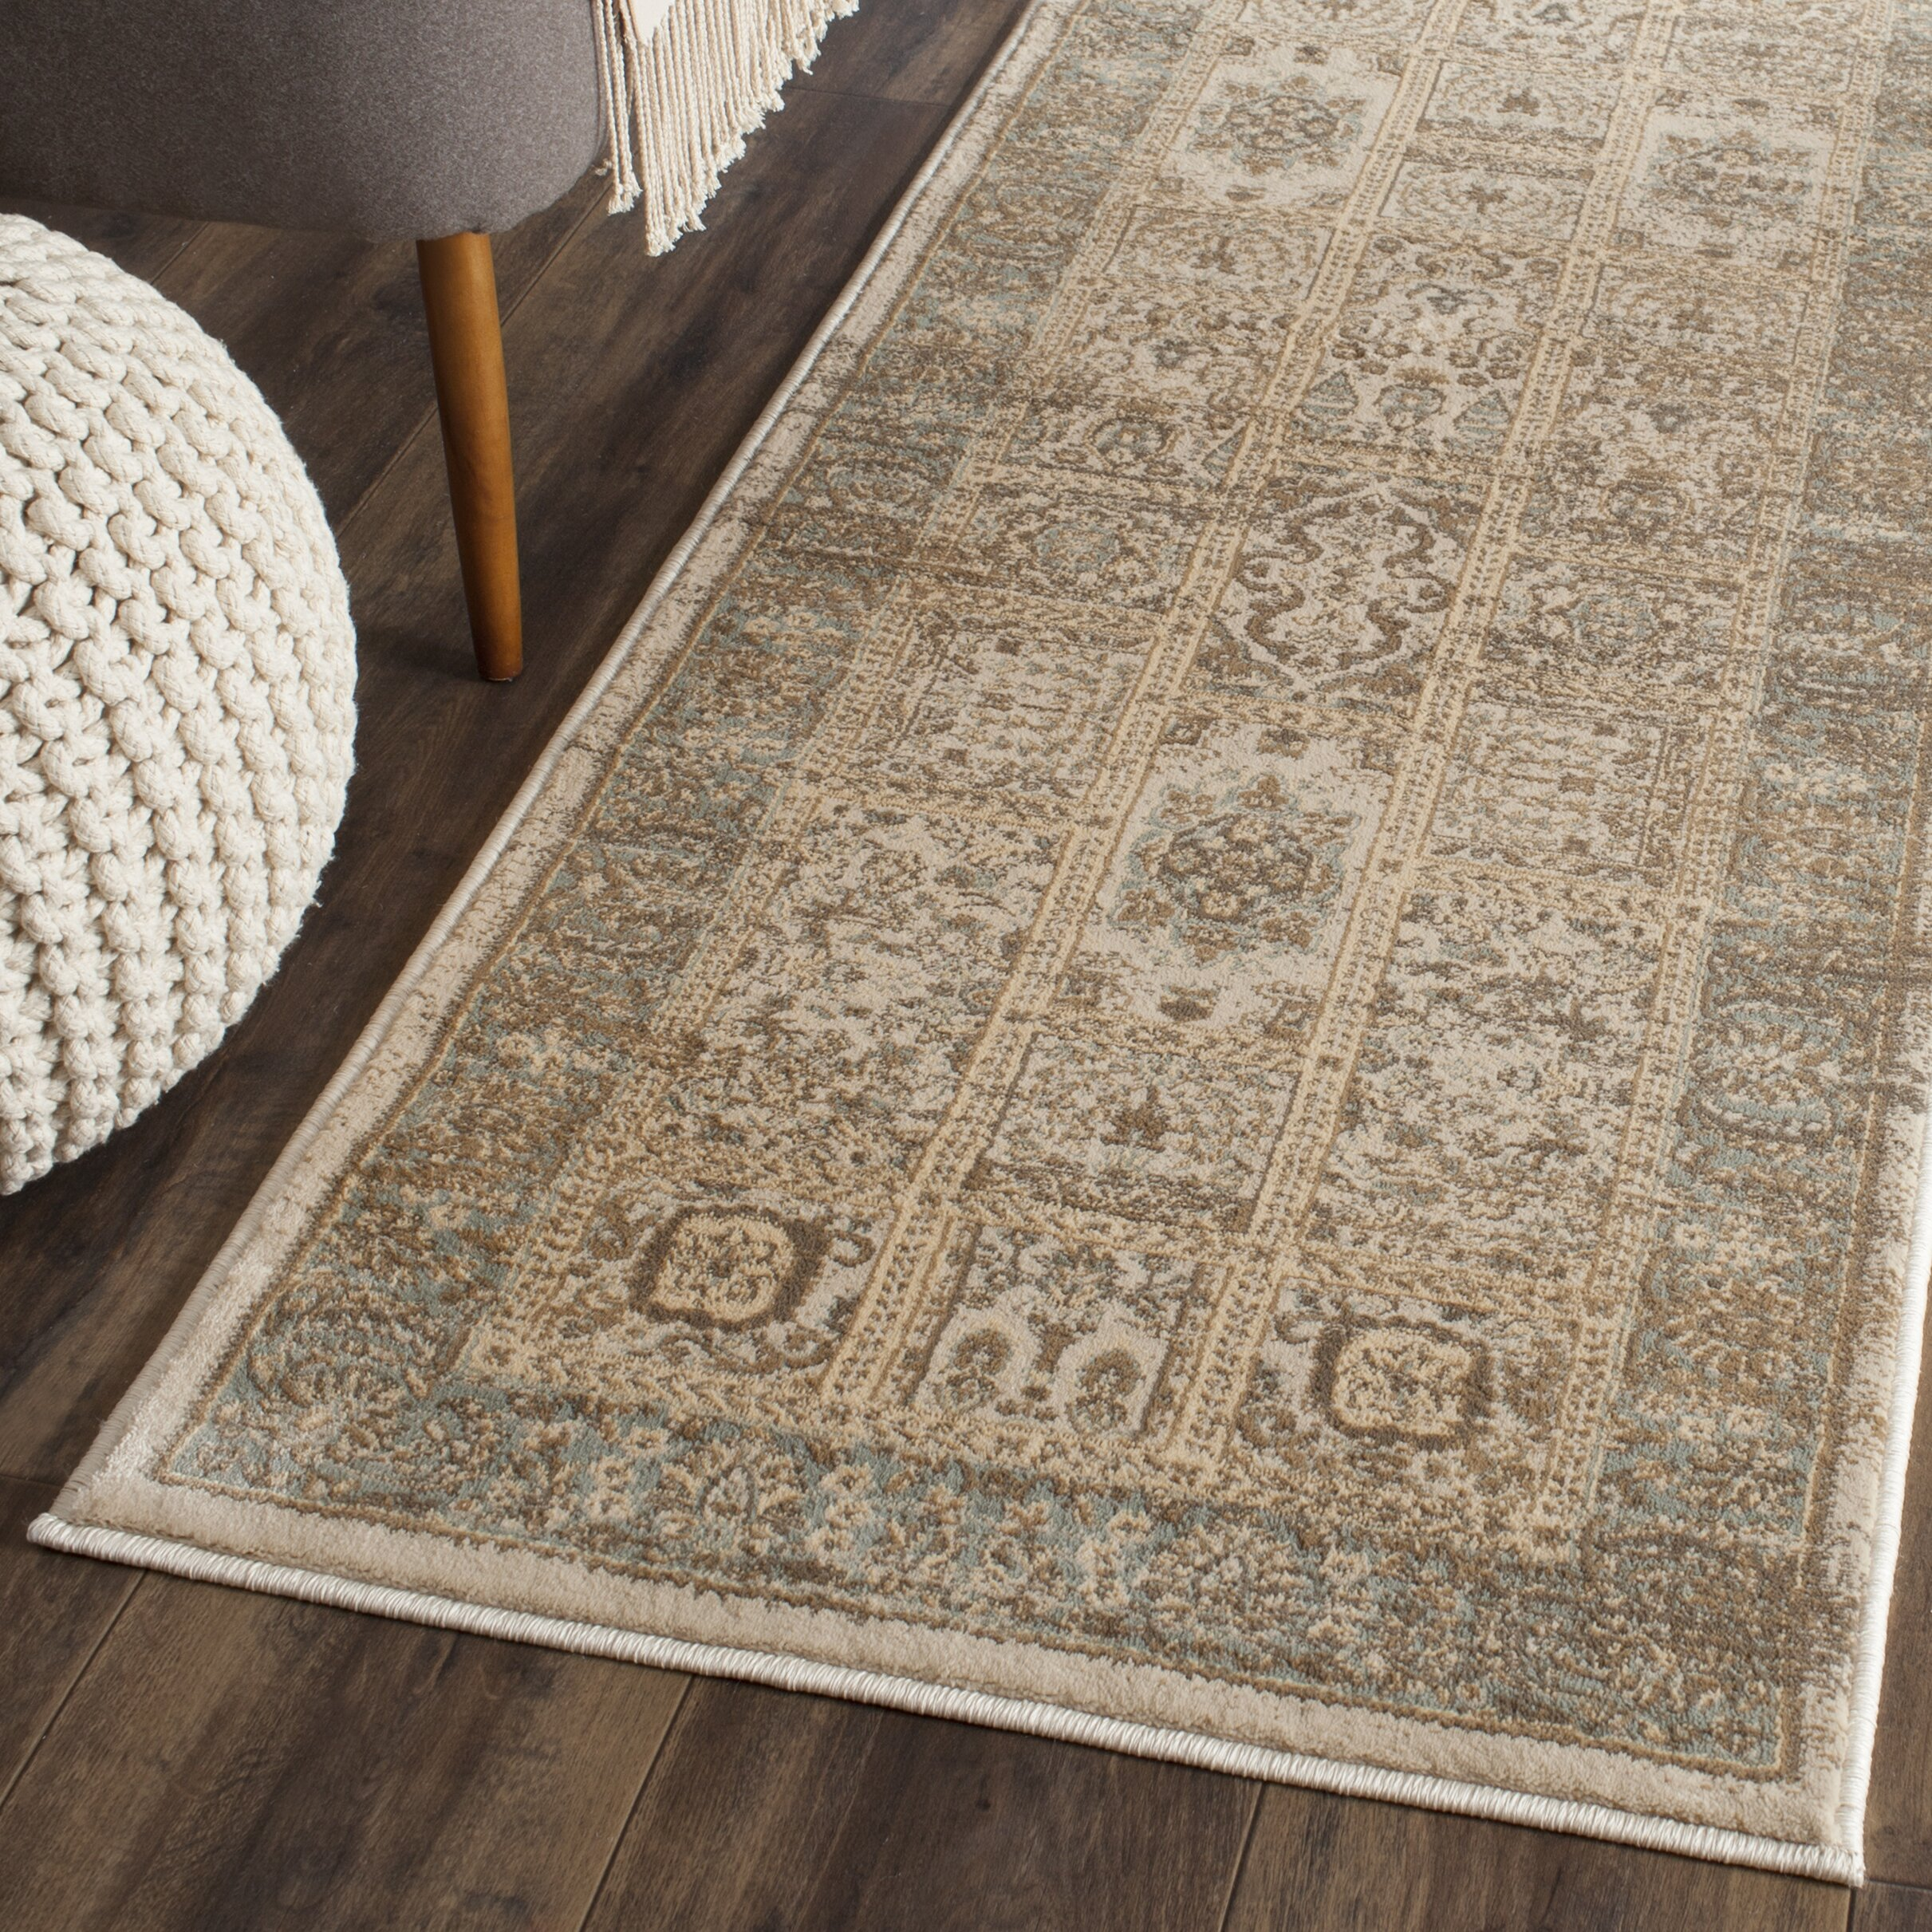 safavieh vintage ivory light blue area rug reviews wayfair. Black Bedroom Furniture Sets. Home Design Ideas